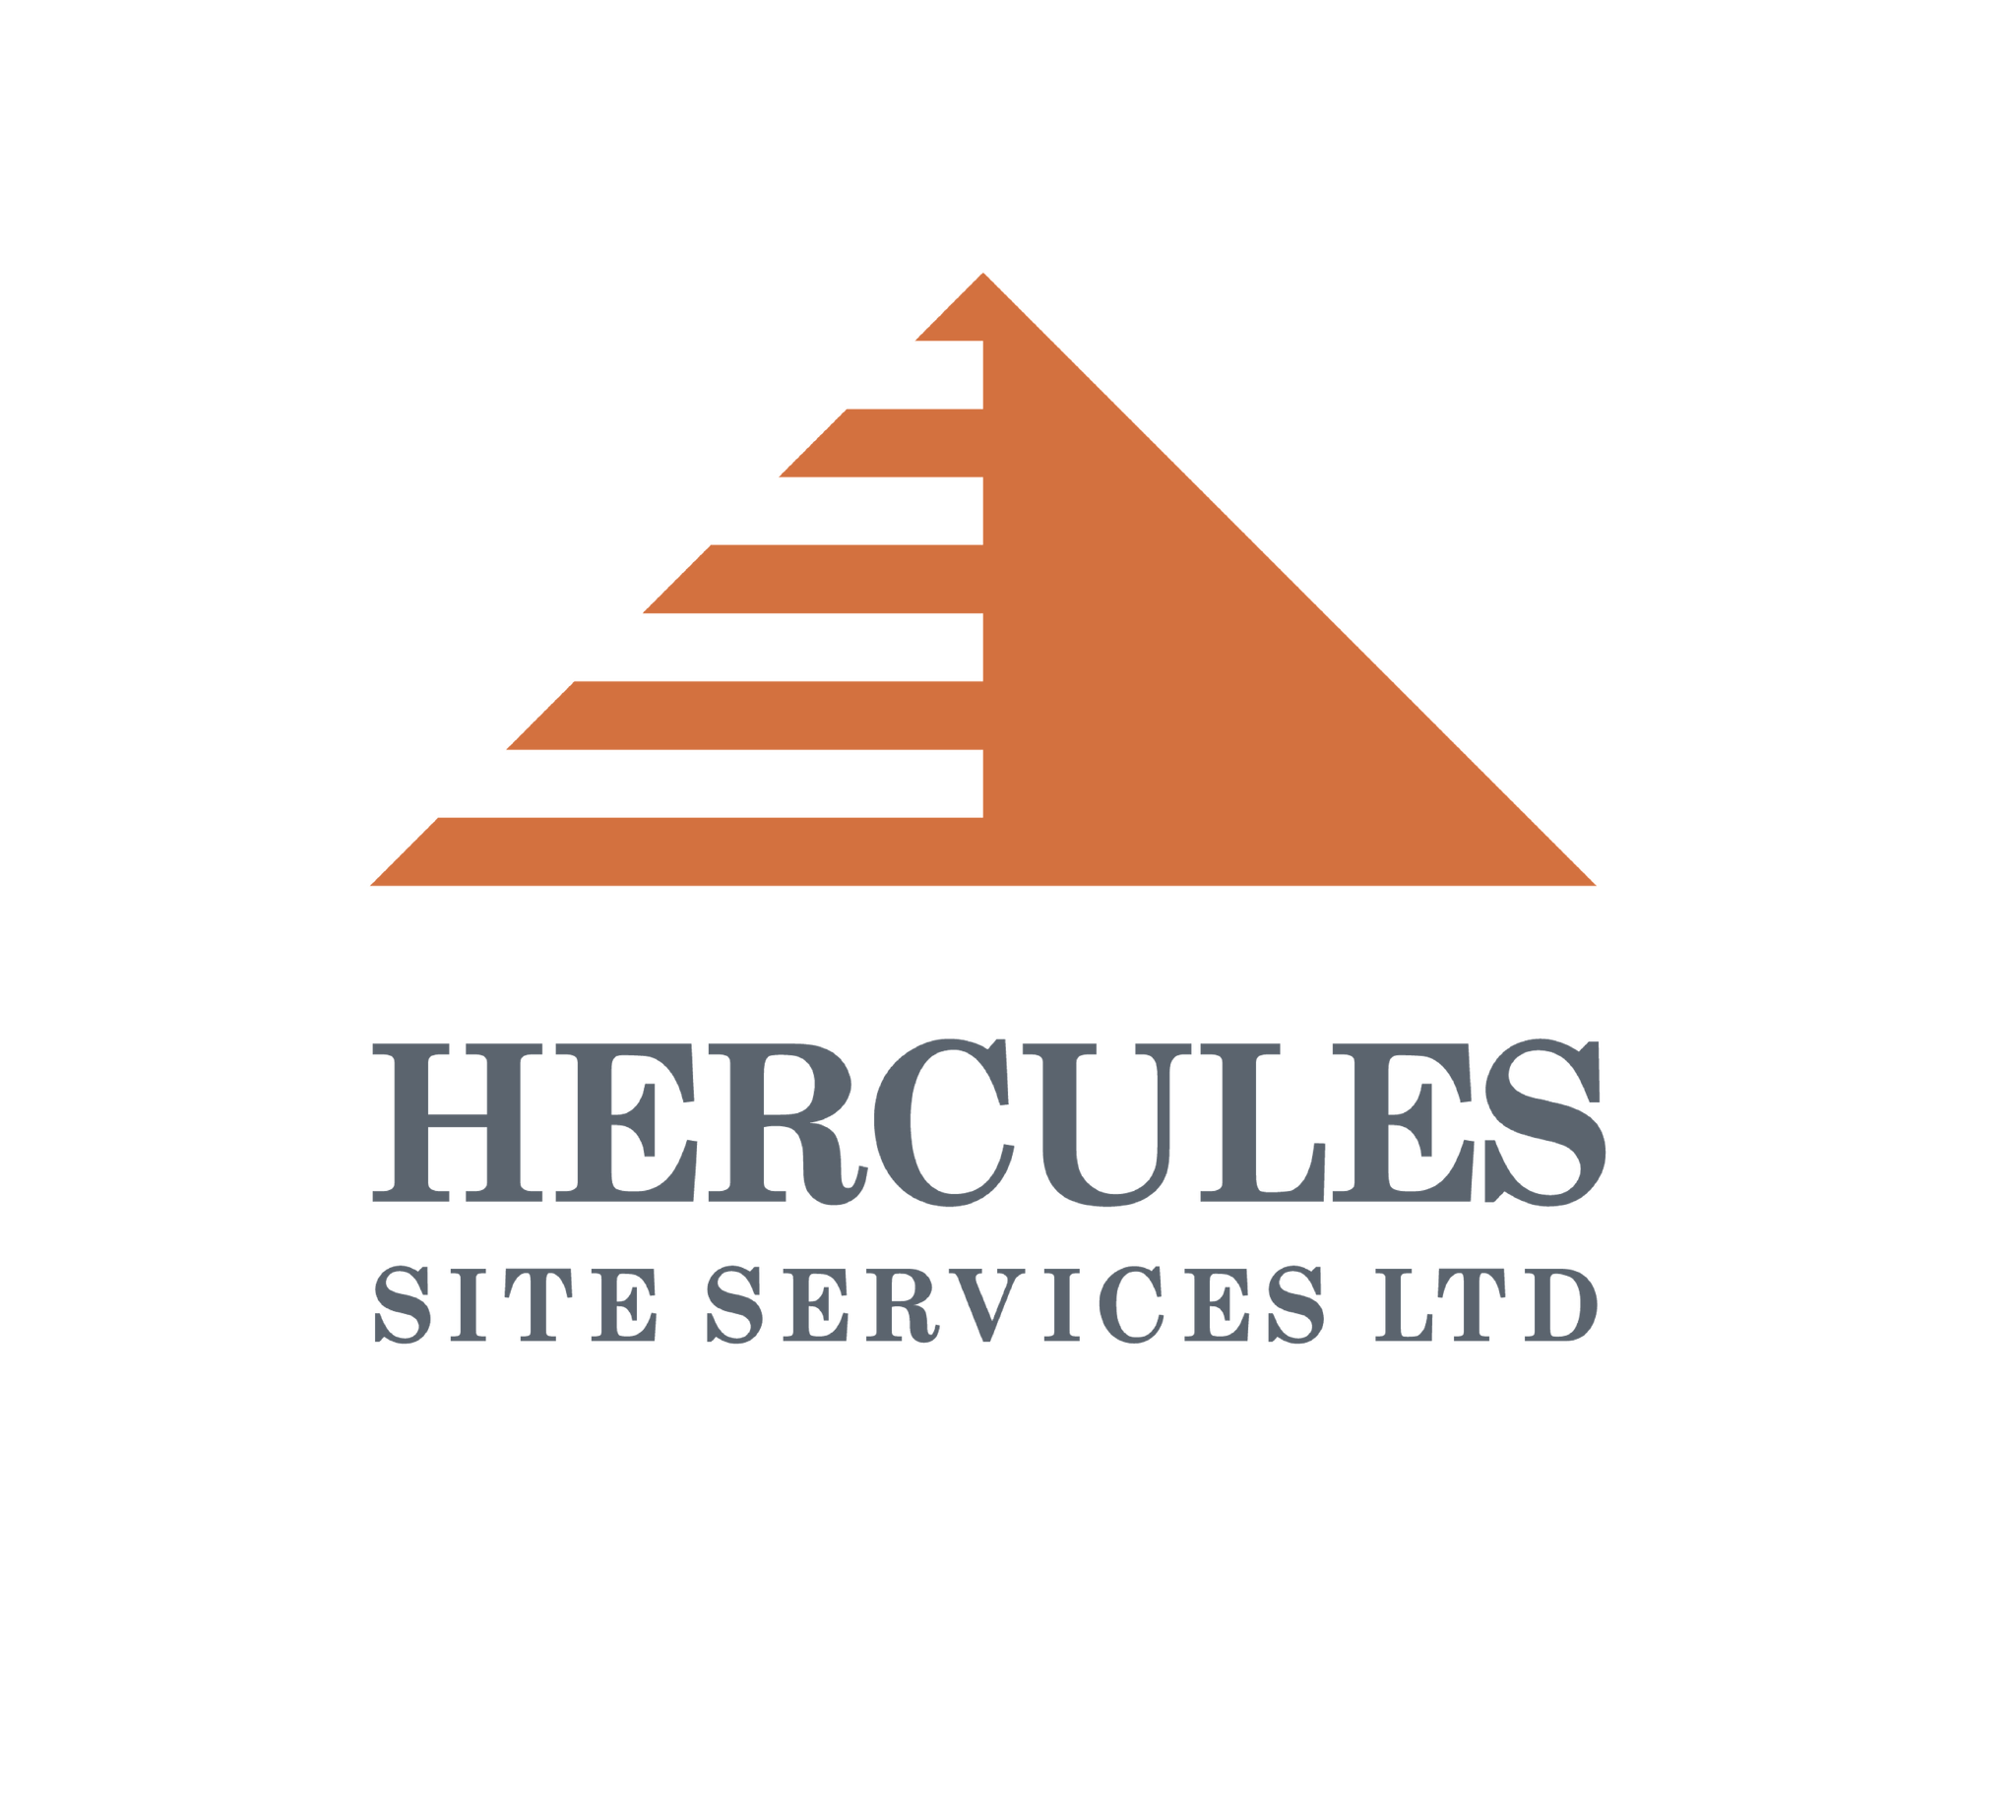 Hercules Site Services LTD